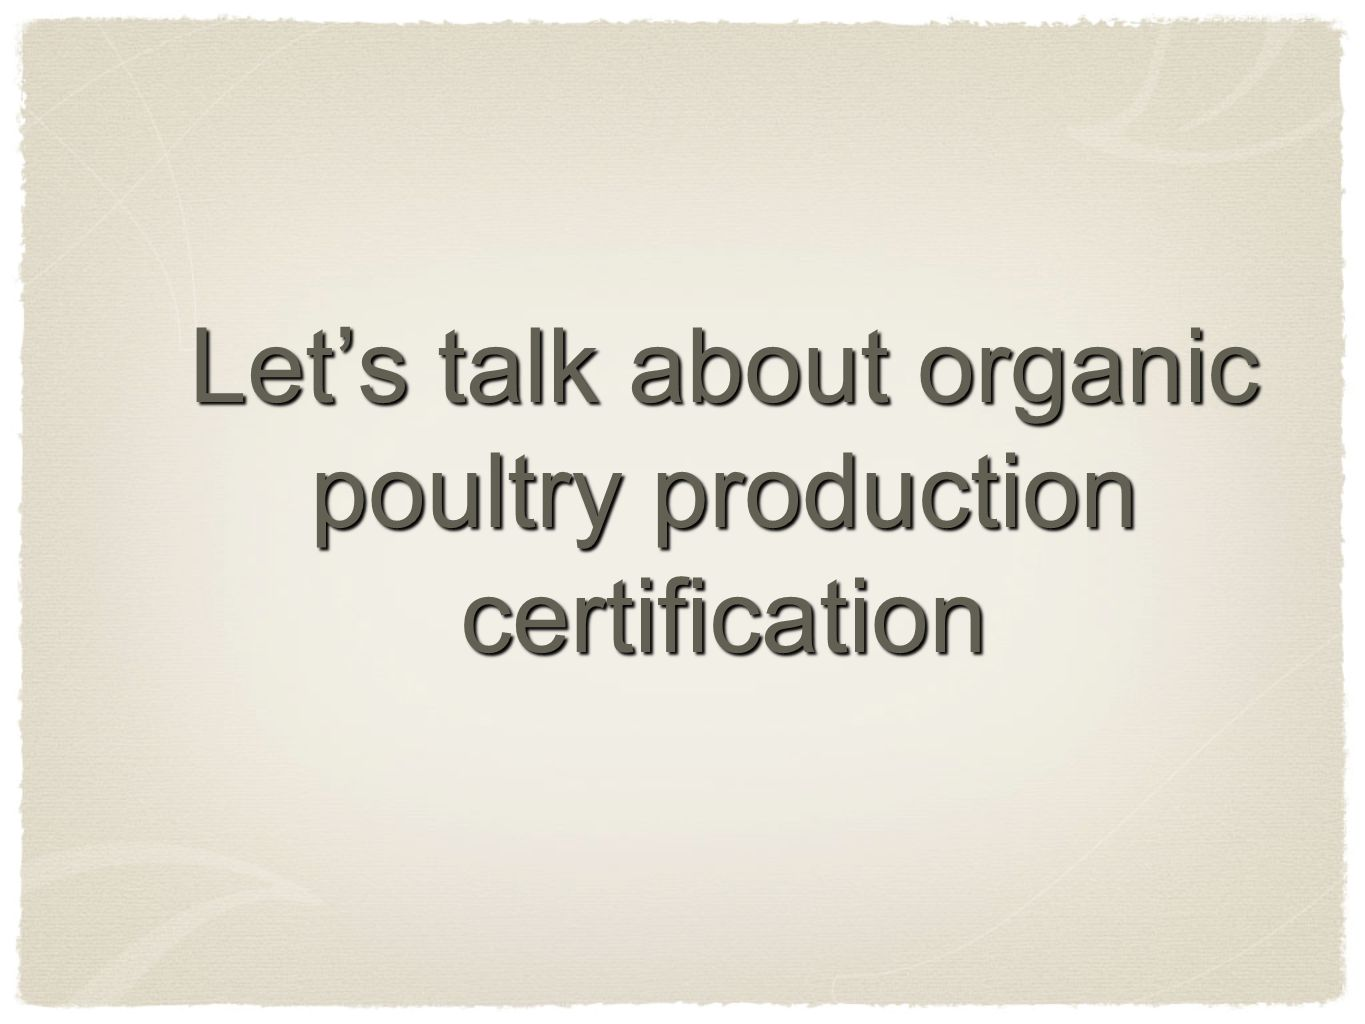 Lets talk about organic poultry production certification